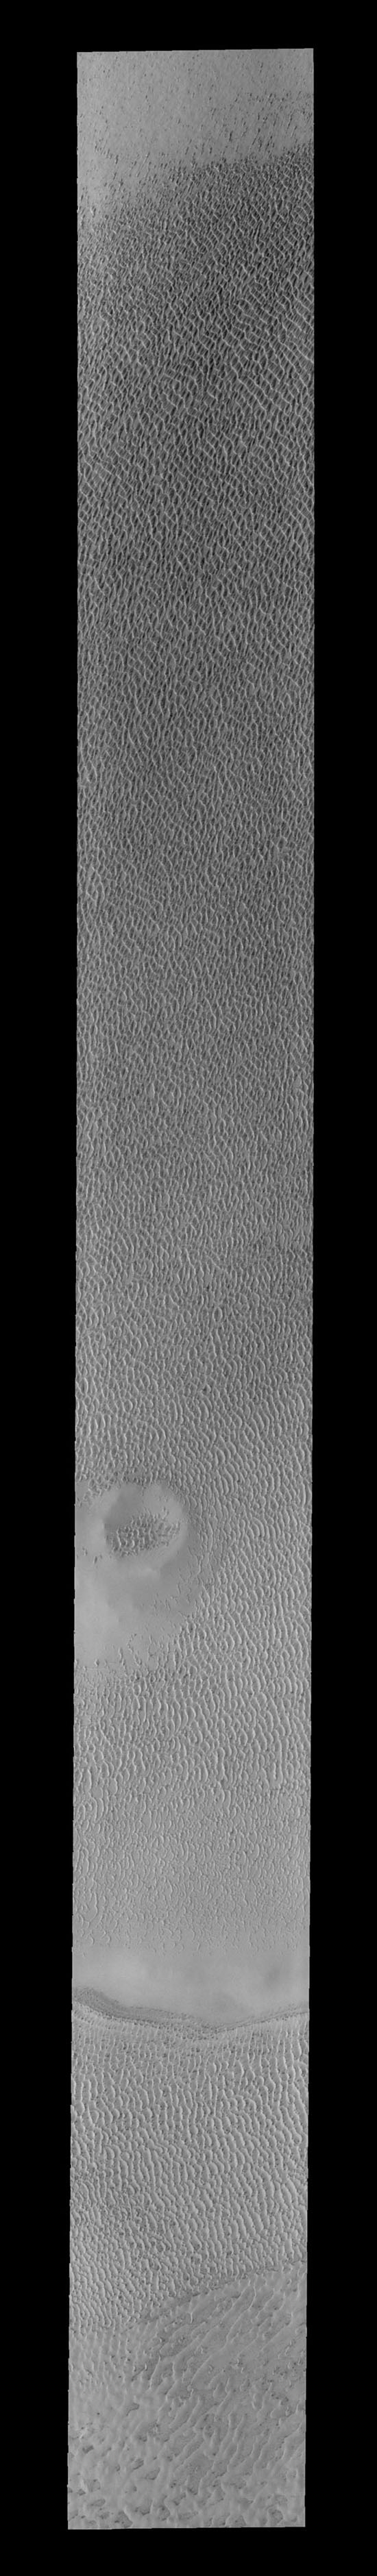 This image captured by NASA's 2001 Mars Odyssey spacecraft shows another portion of the large dune field near the north polar cap.